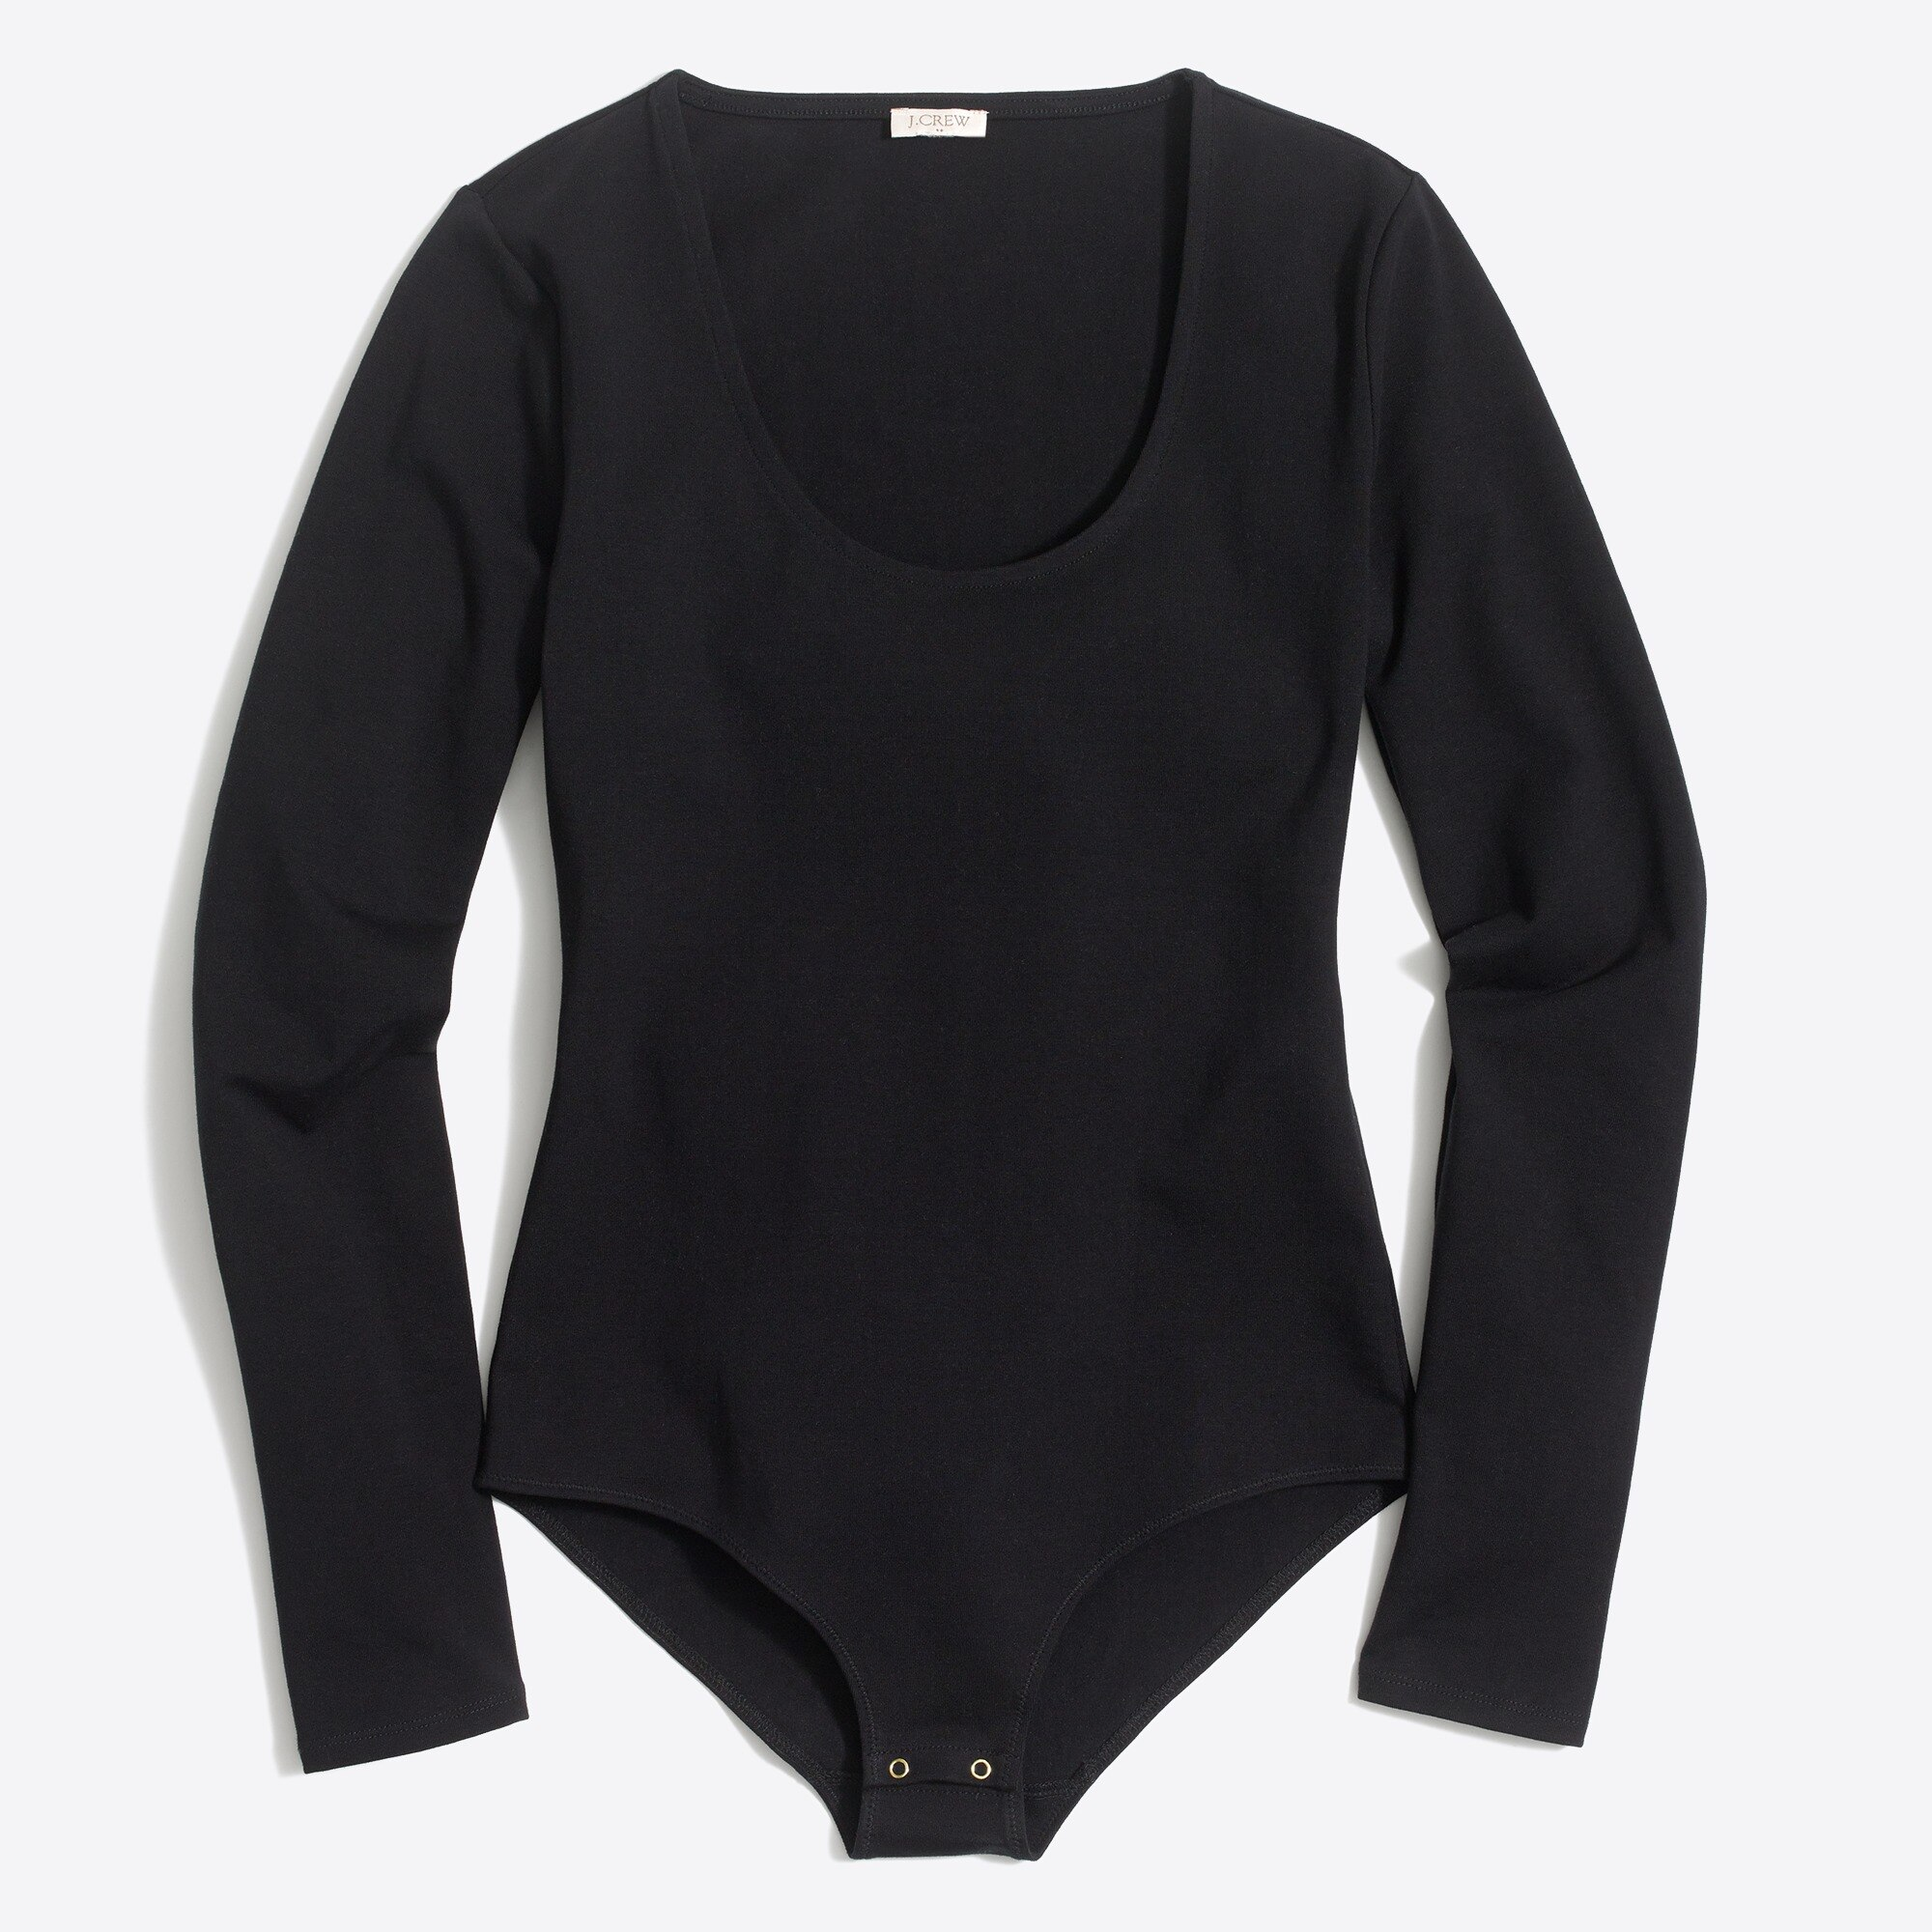 Long-sleeve bodysuit